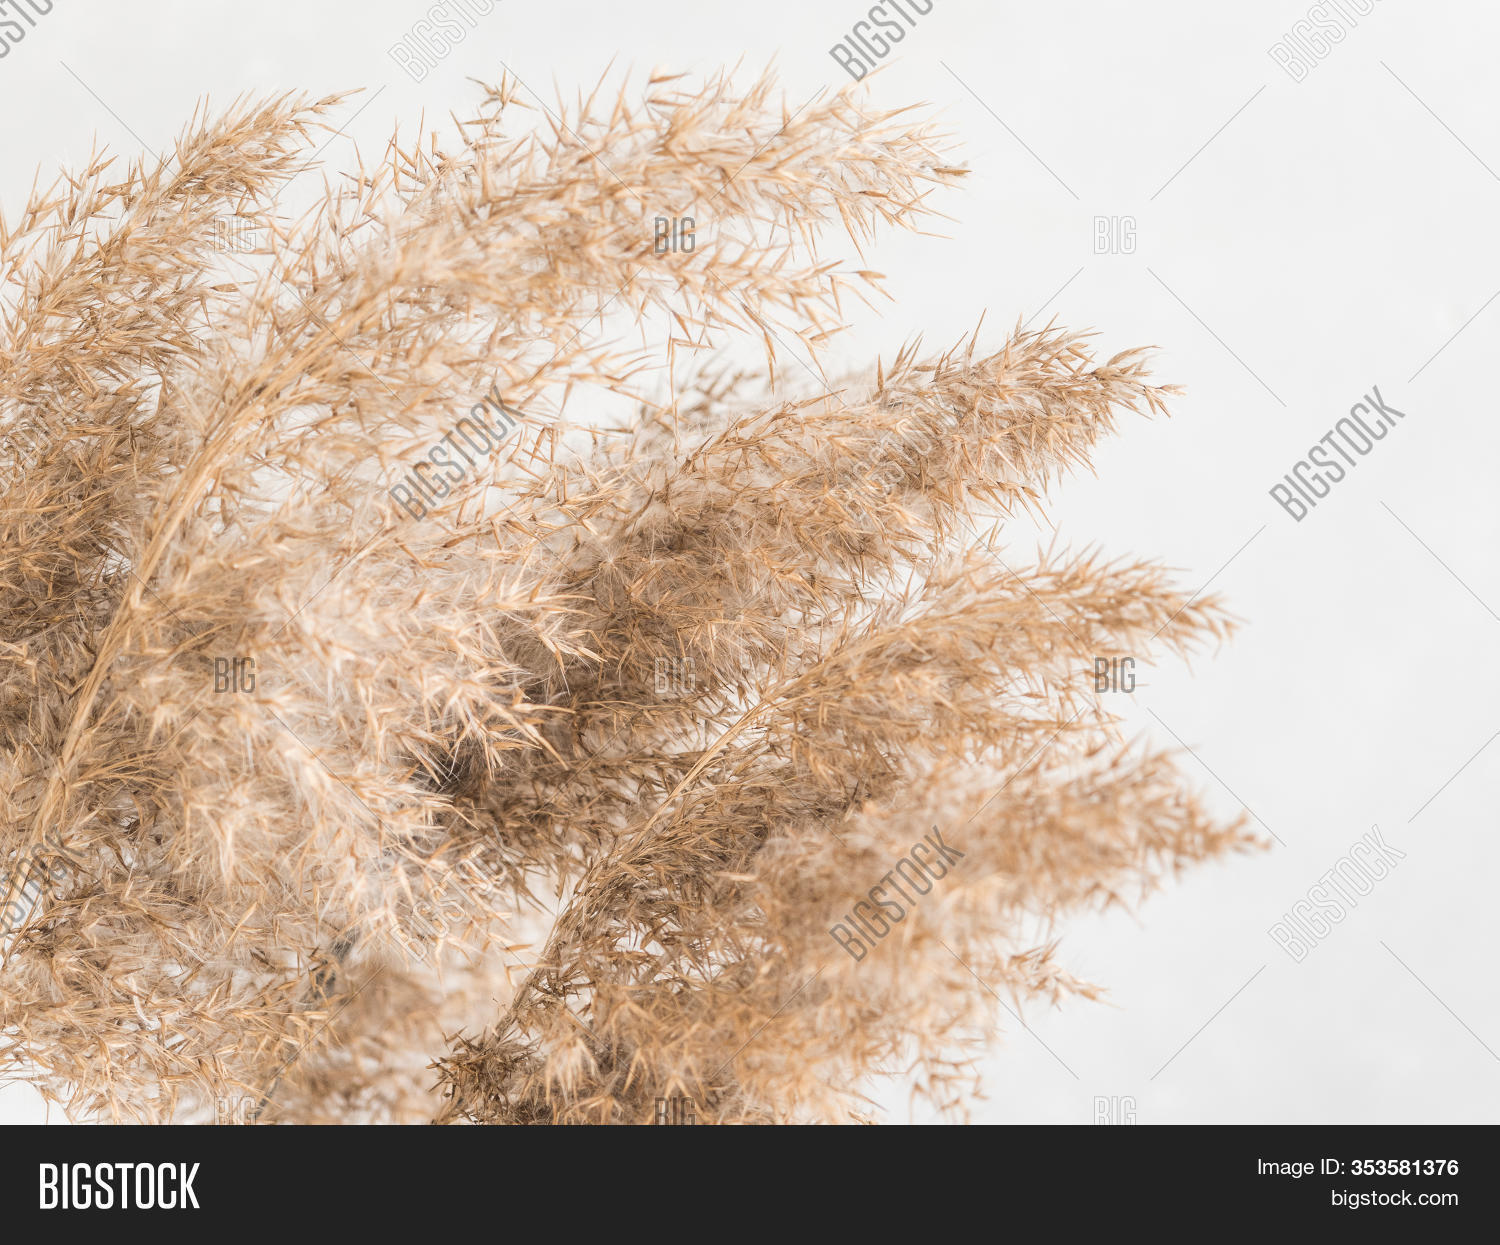 Dry Beige Reed On Image Photo Free Trial Bigstock